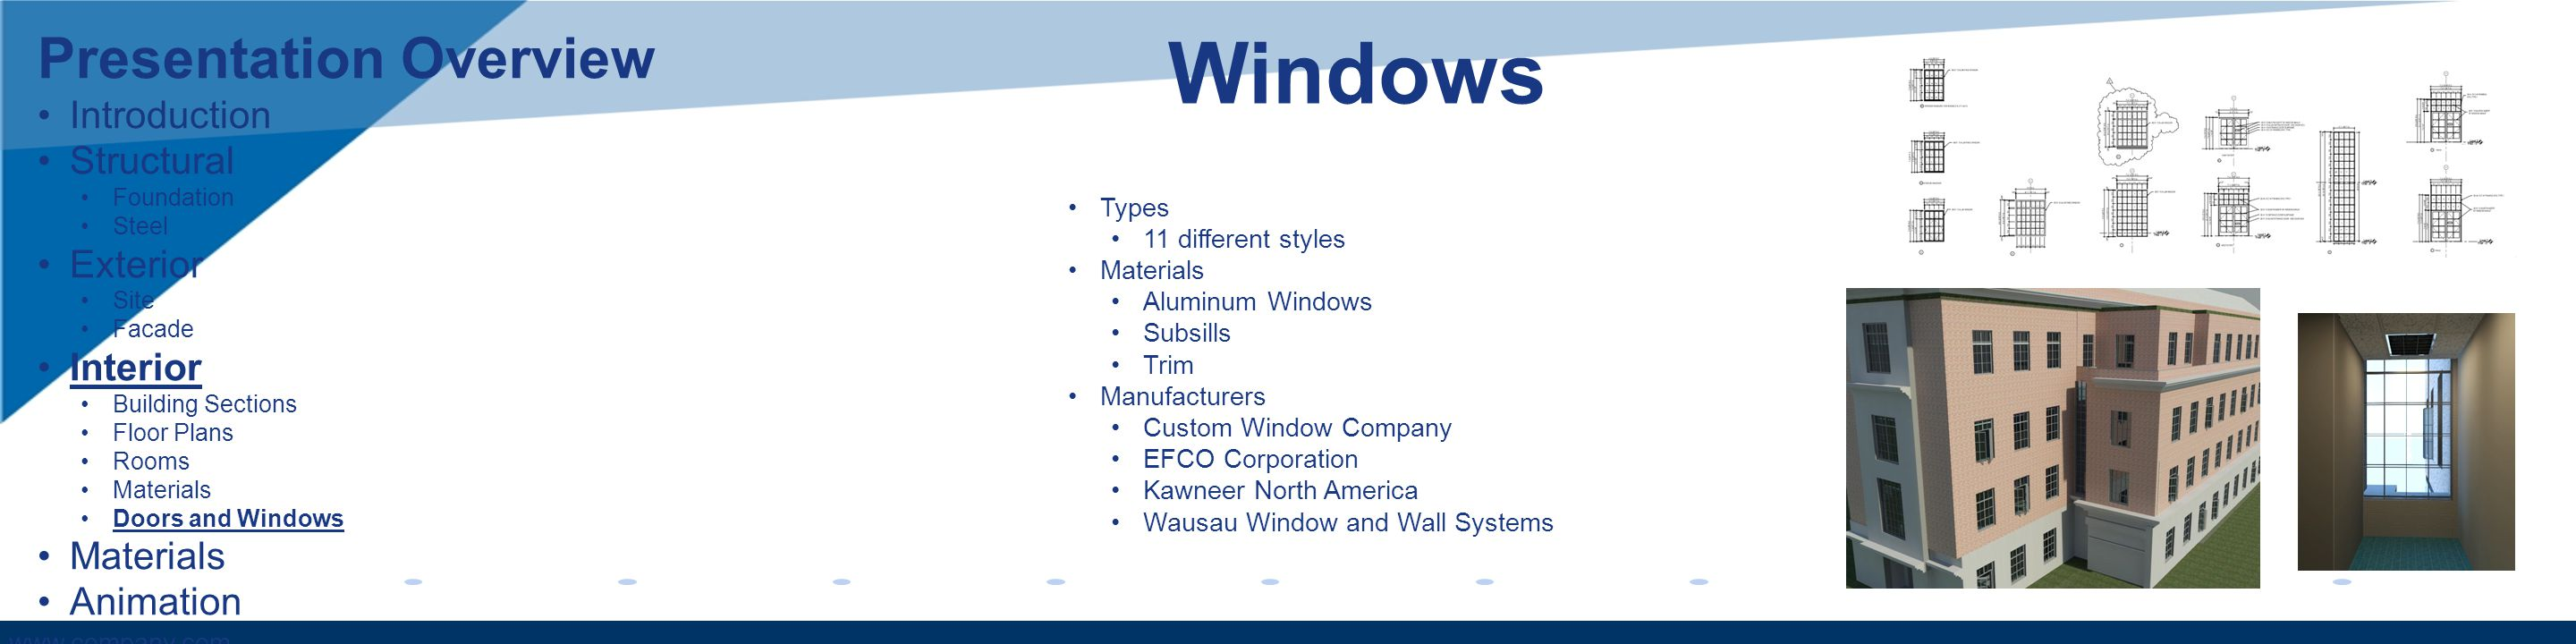 www.company.com Windows Types 11 different styles Materials Aluminum Windows Subsills Trim Manufacturers Custom Window Company EFCO Corporation Kawnee